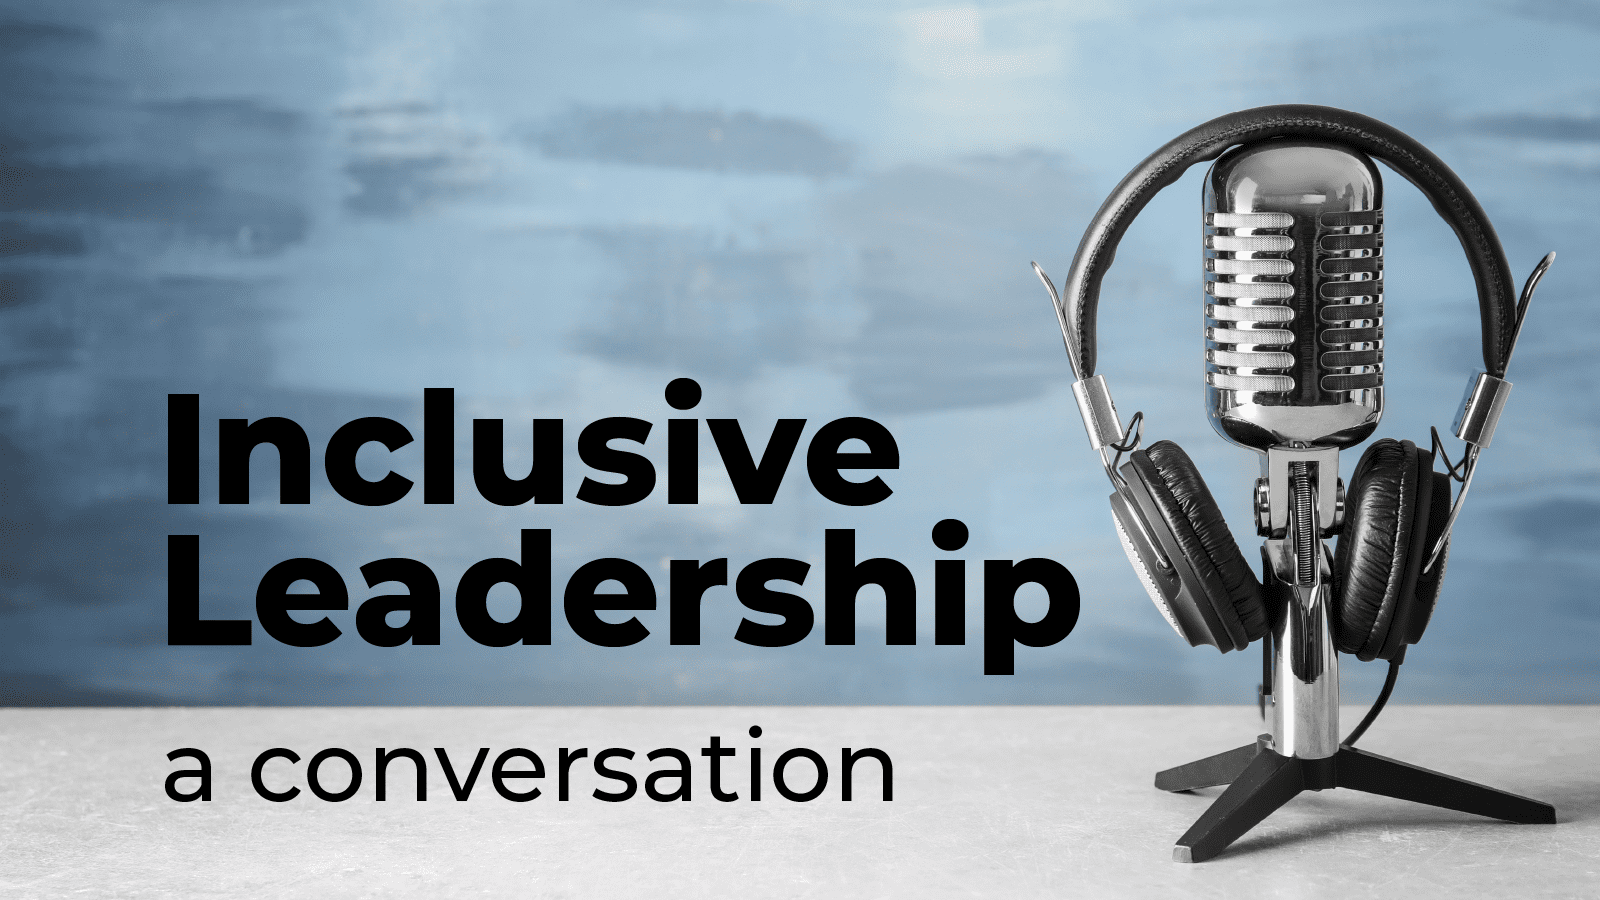 inclusive leadership a conversation - microphone on desk with headphones